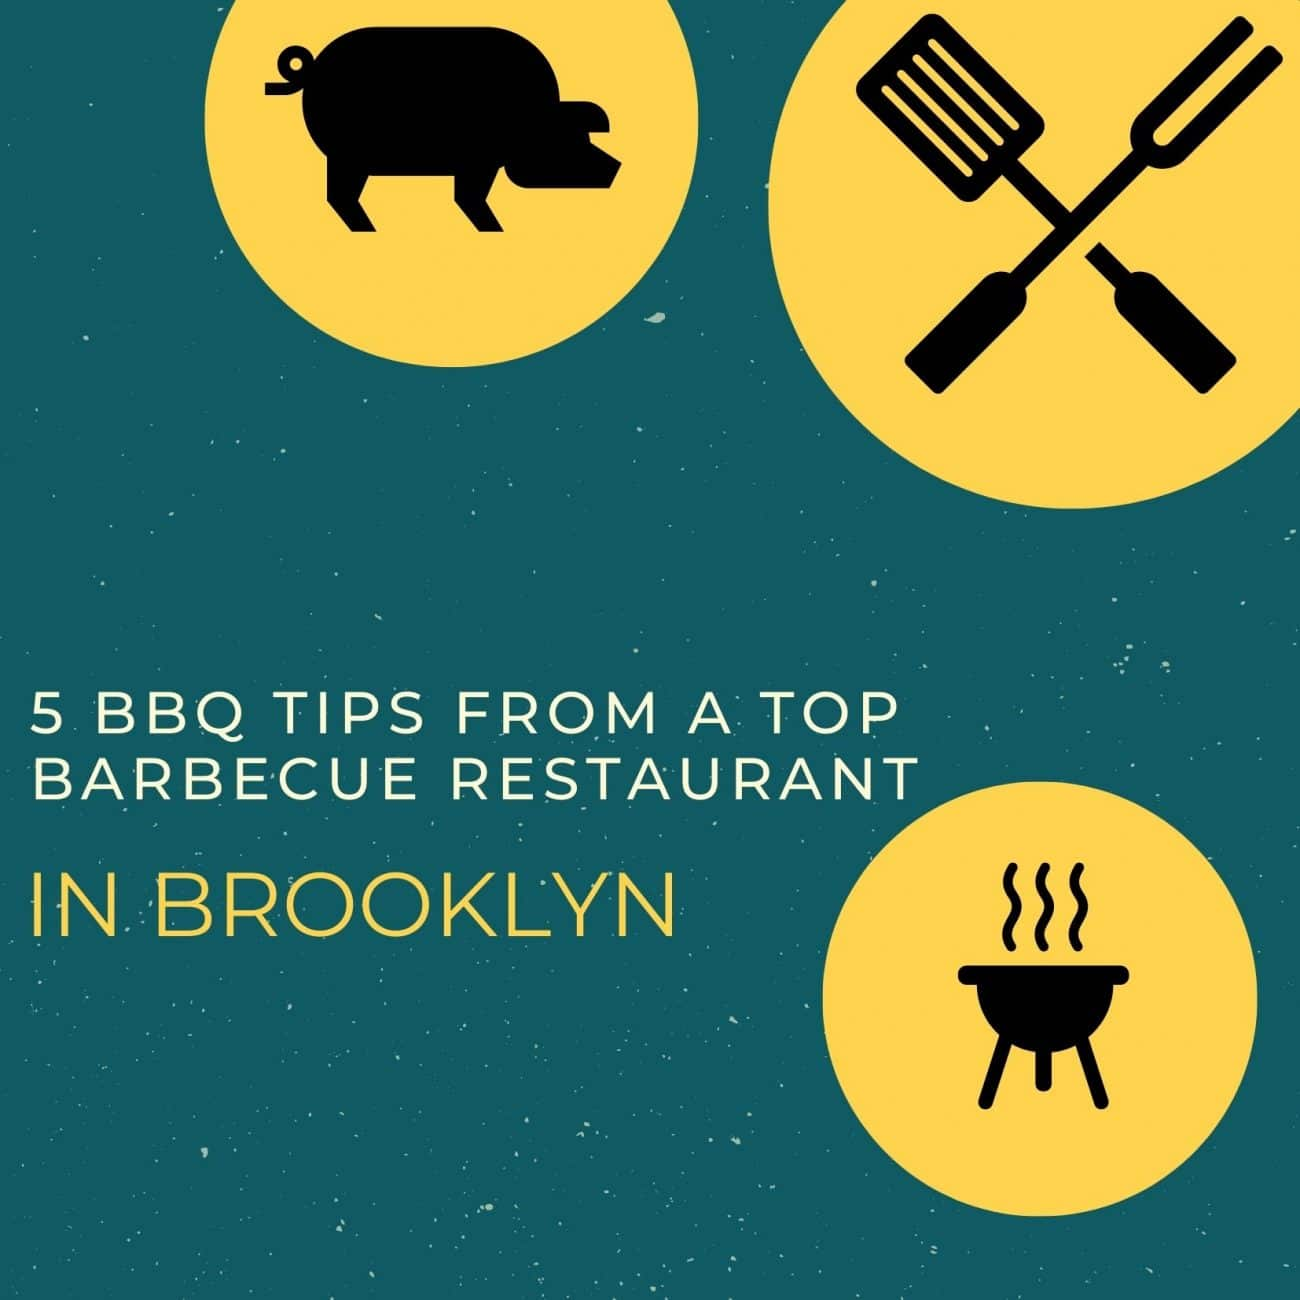 5 BBQ Tips from A Top Barbecue Restaurant In Brooklyn